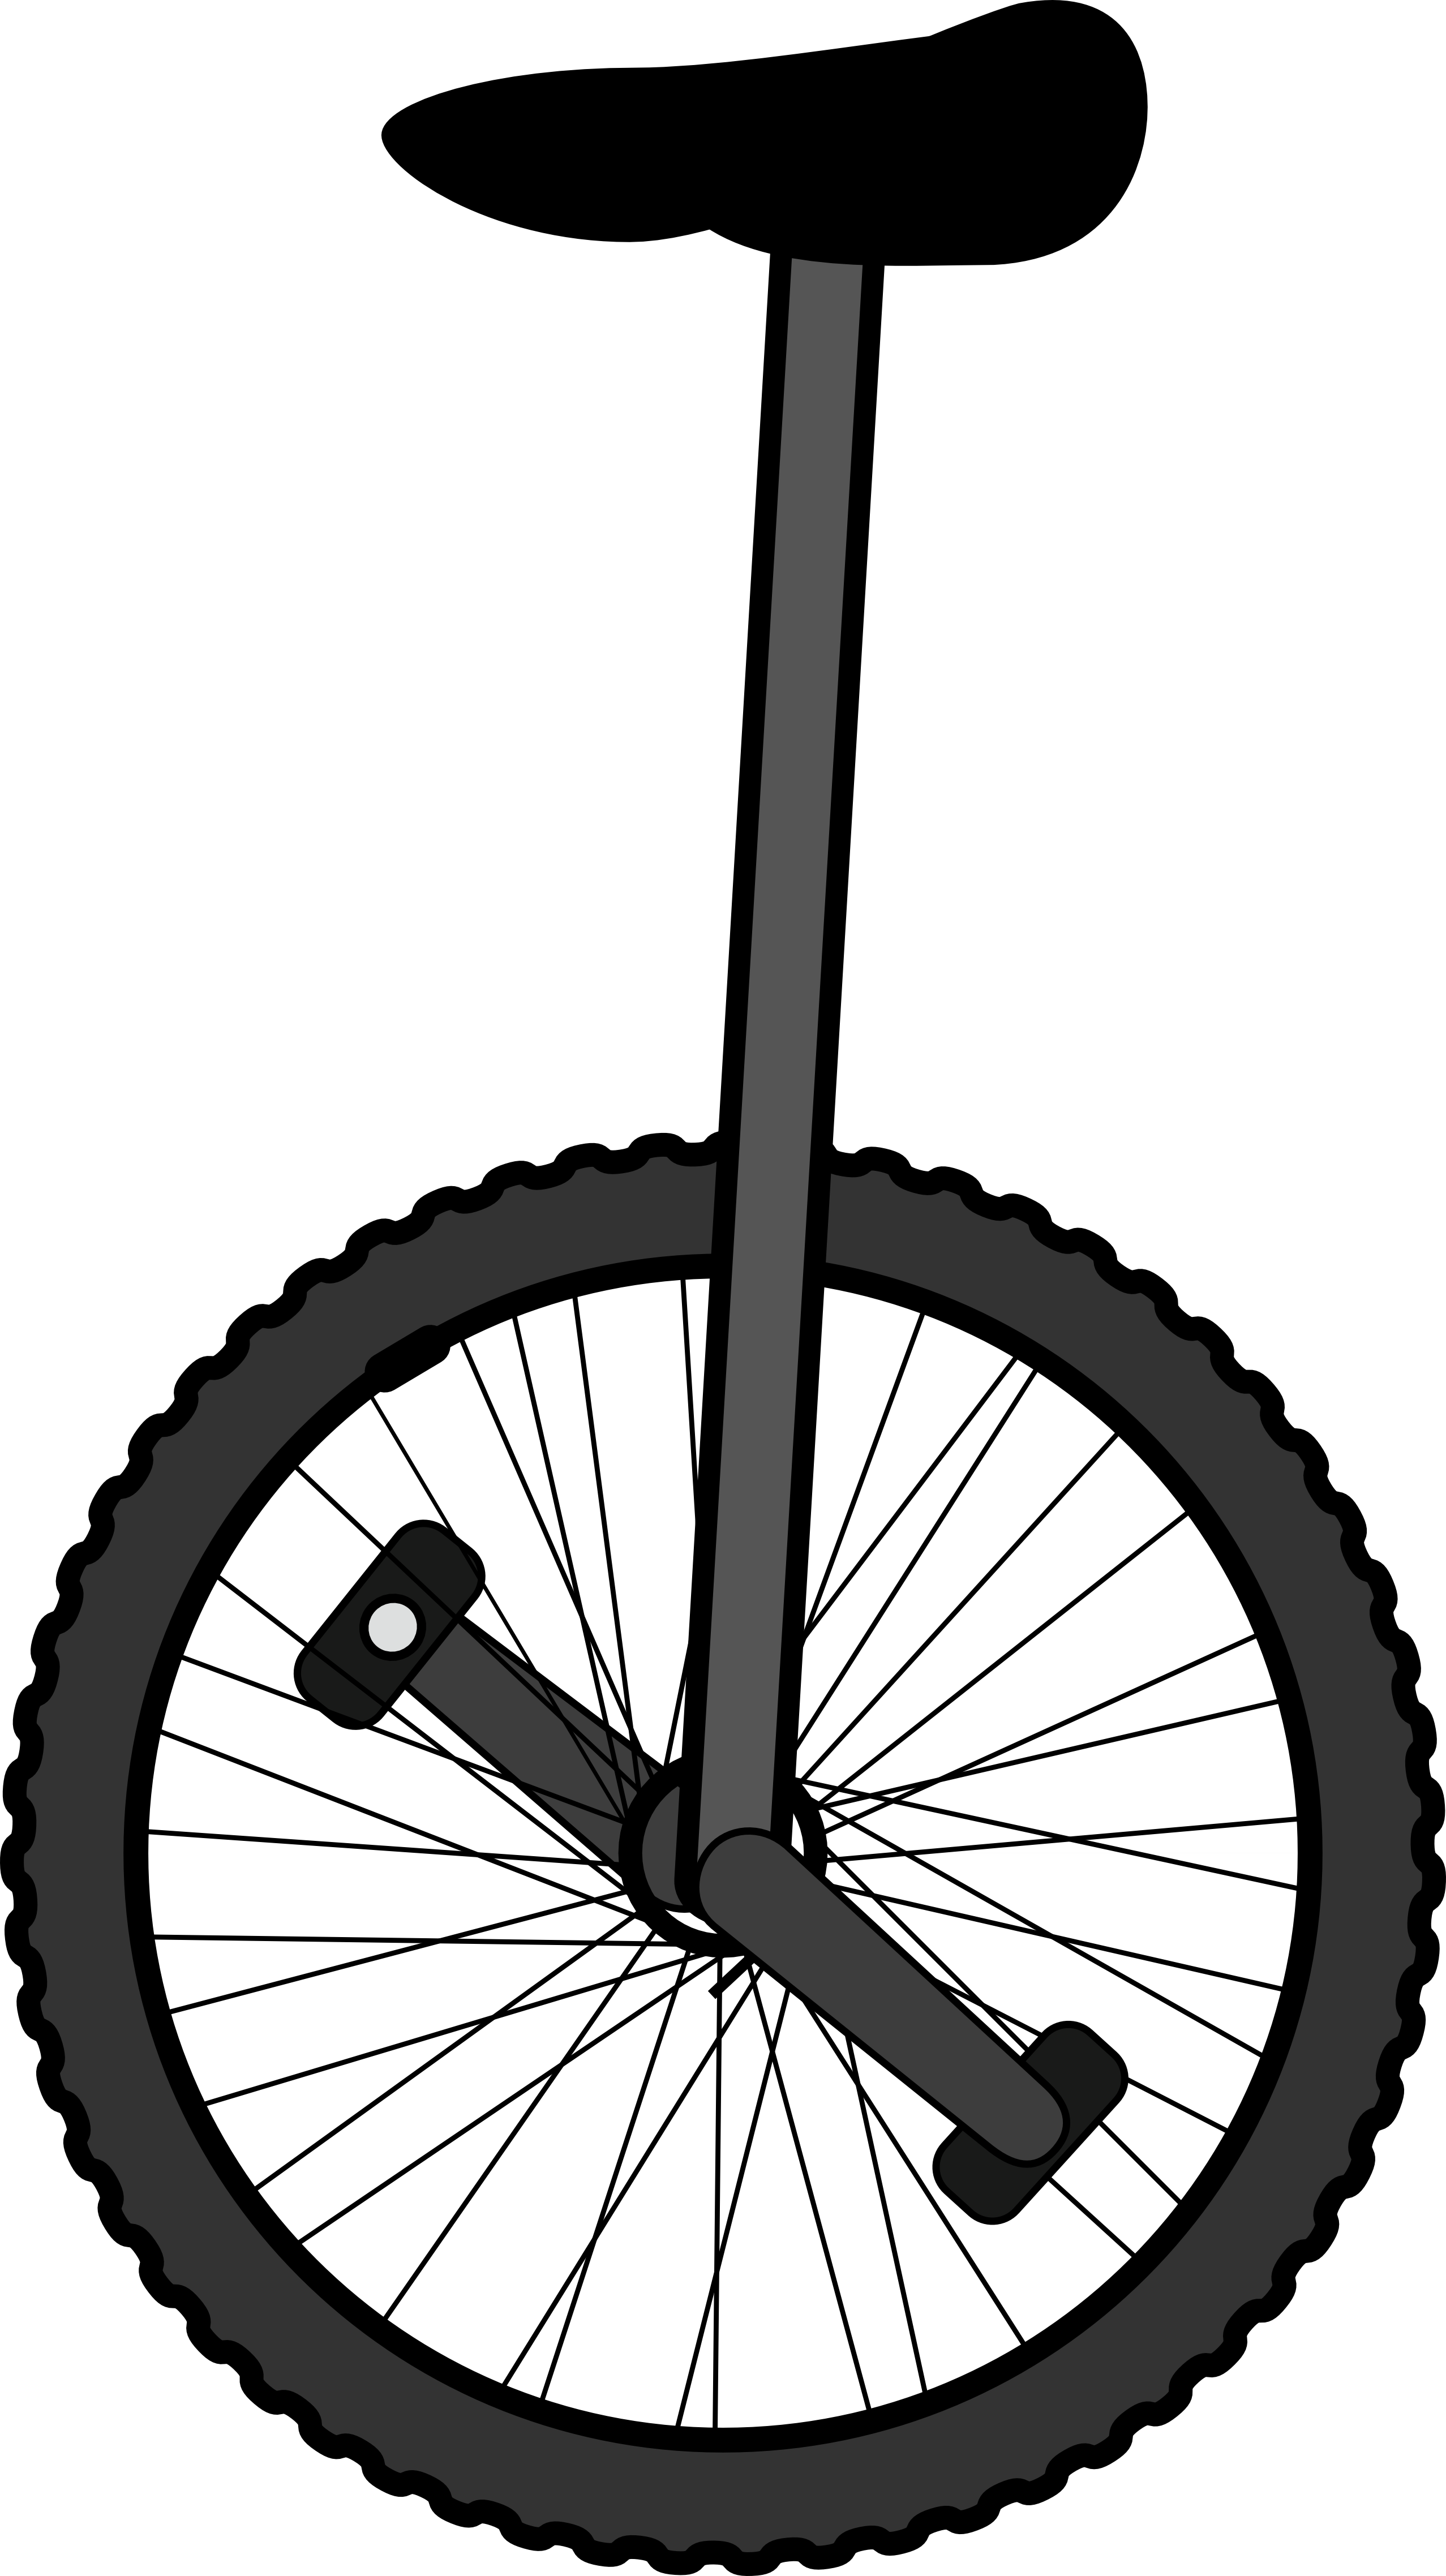 Unicycle black and white. Wheel clipart circus